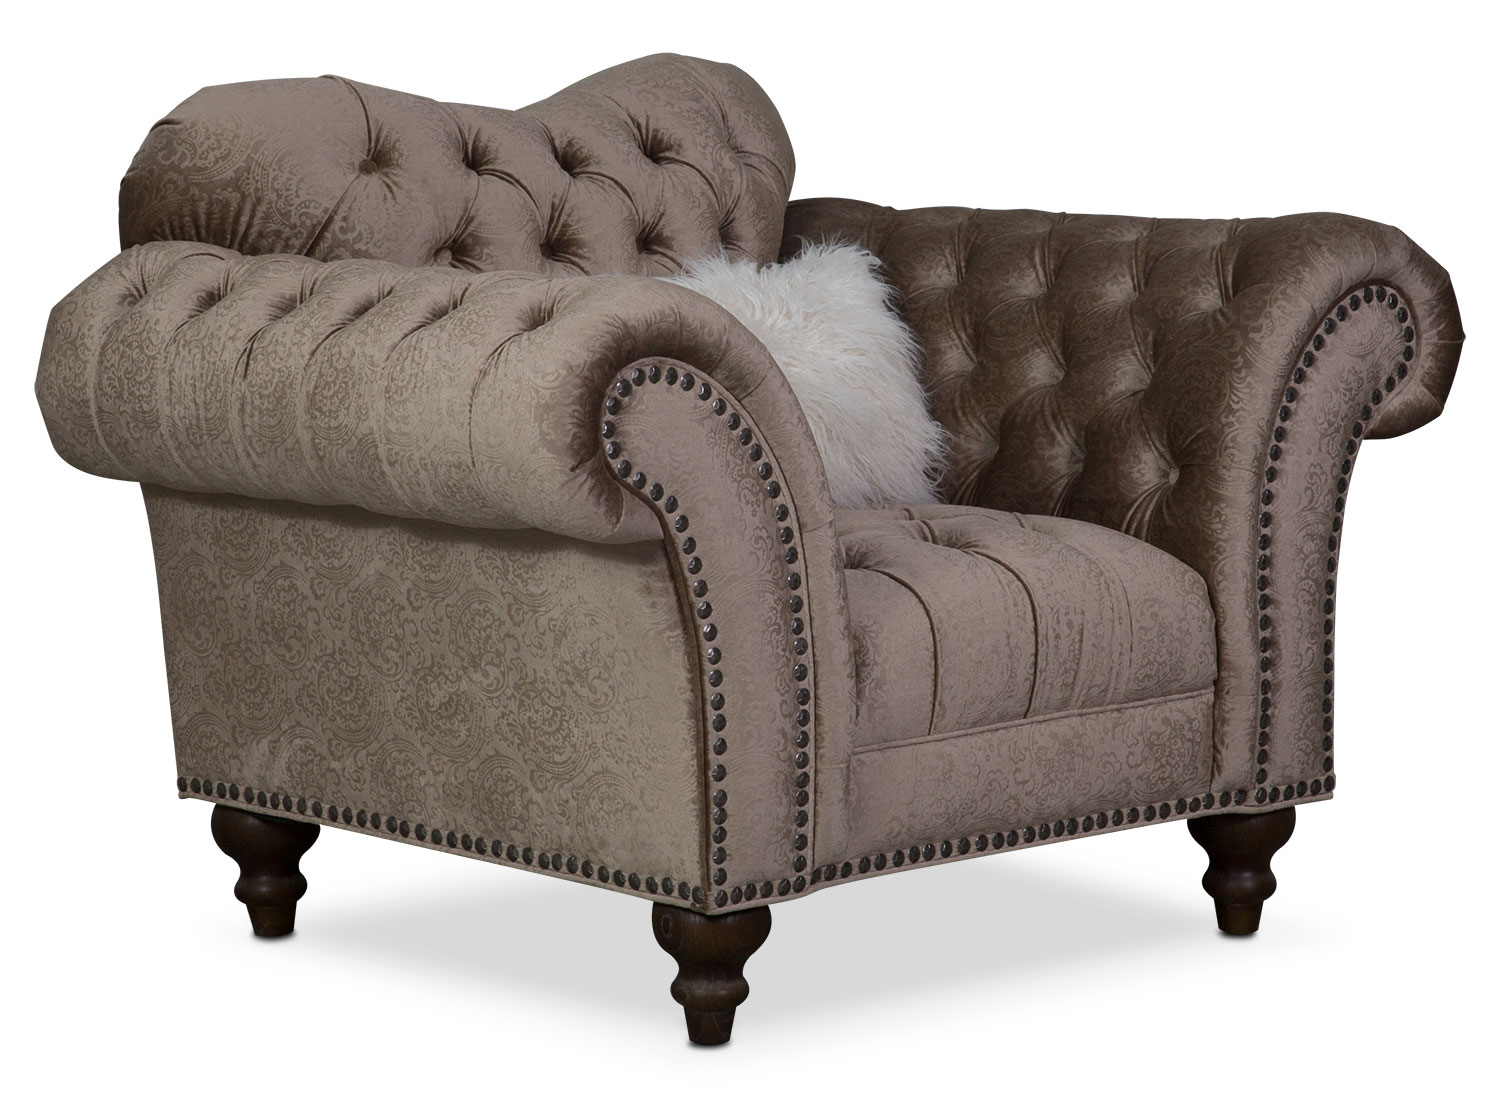 Living Room Furniture - Brittney Chair - Champagne